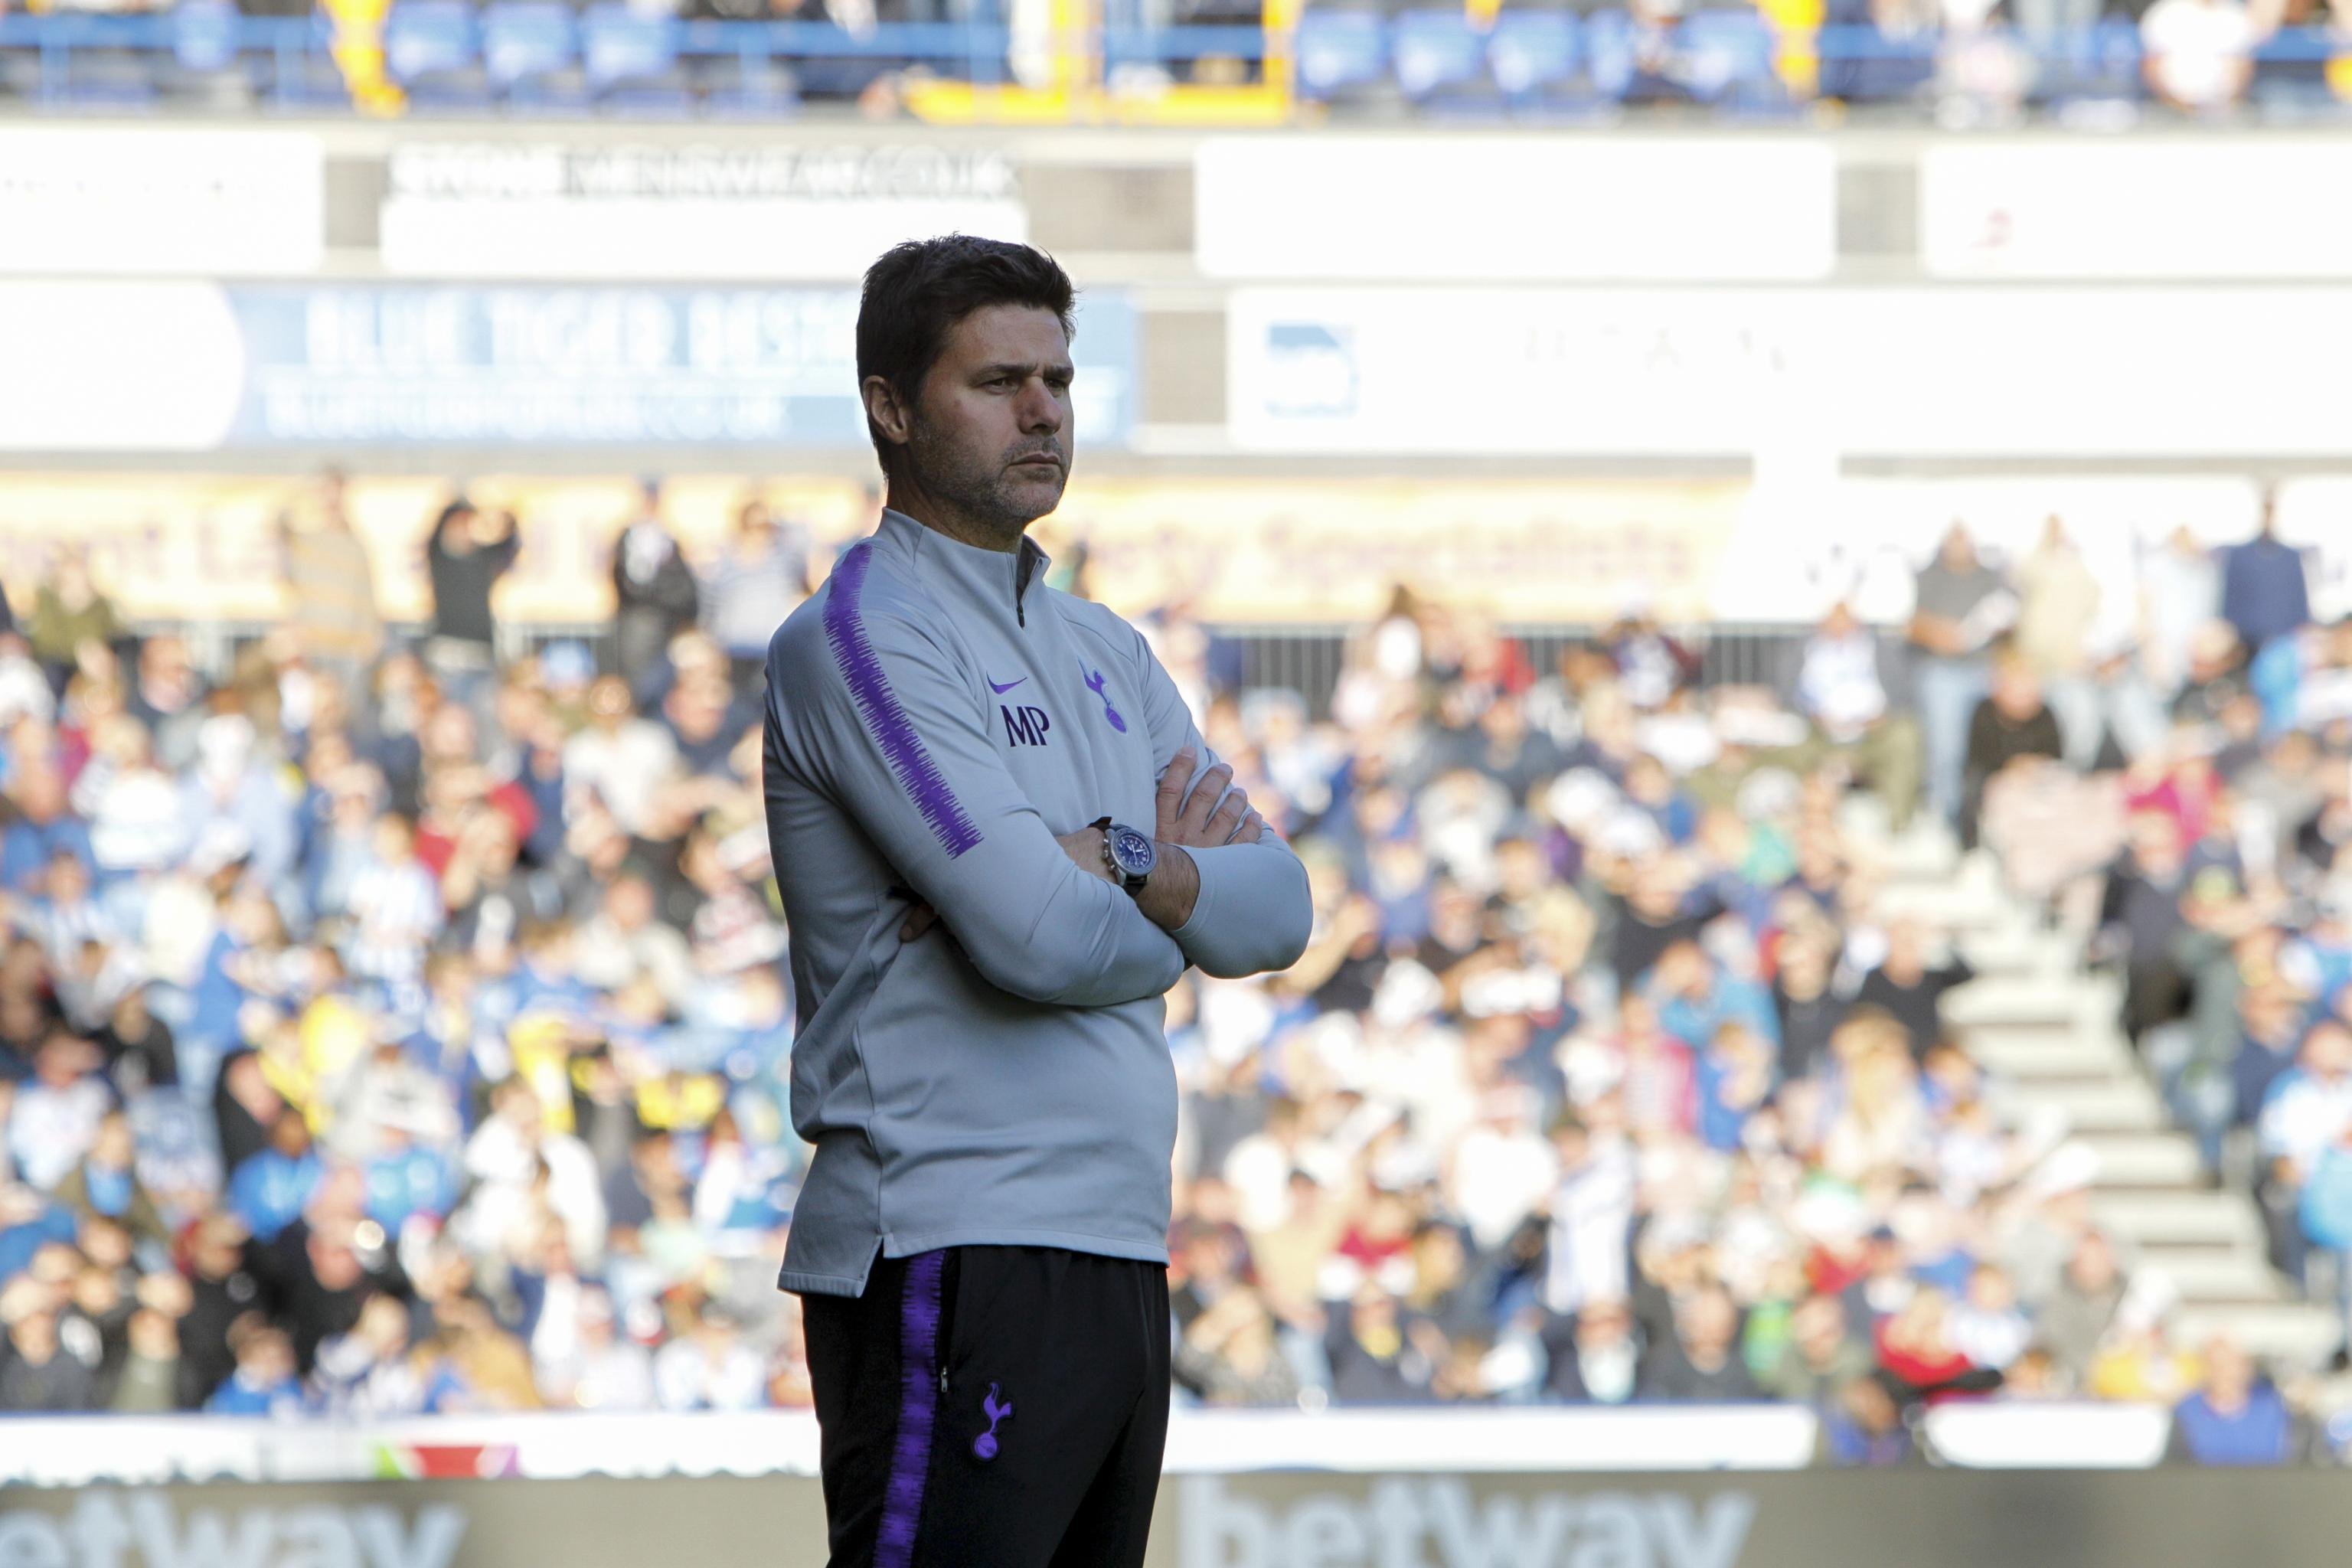 Taking Barcelona Manager Position Impossible Says Mauricio Pochettino Bleacher Report Latest News Videos And Highlights